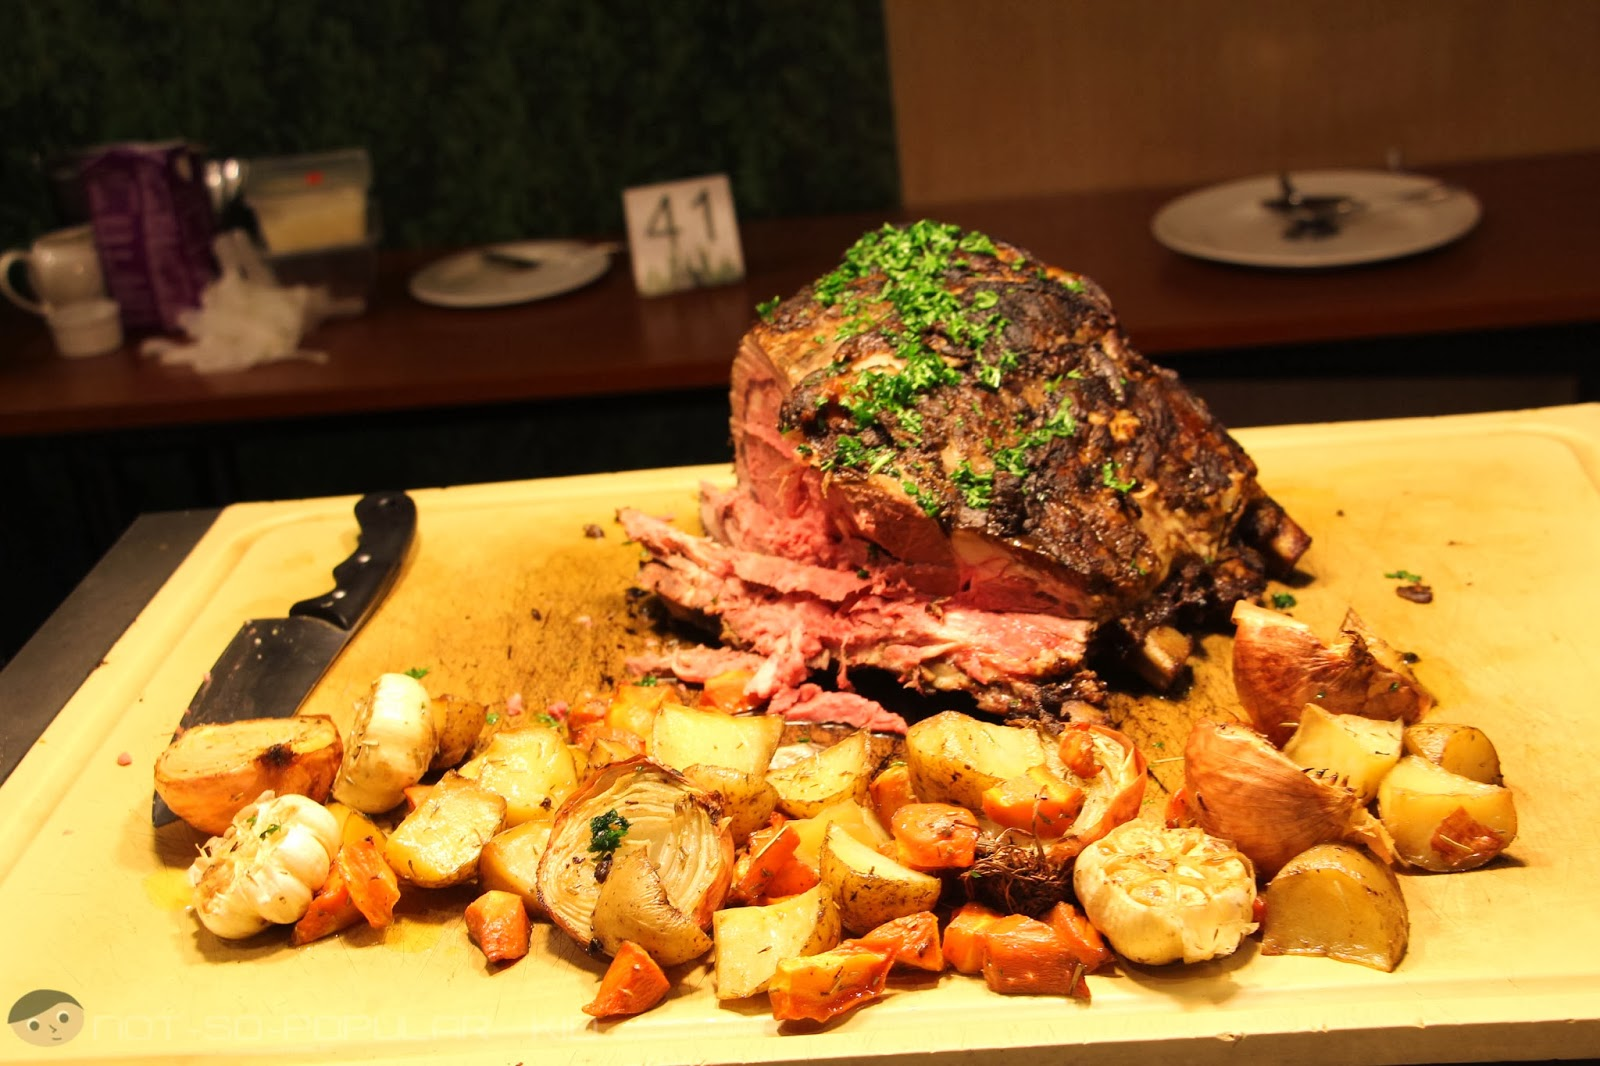 The tantalizing roast beef of Midas Hotel - tender but rare